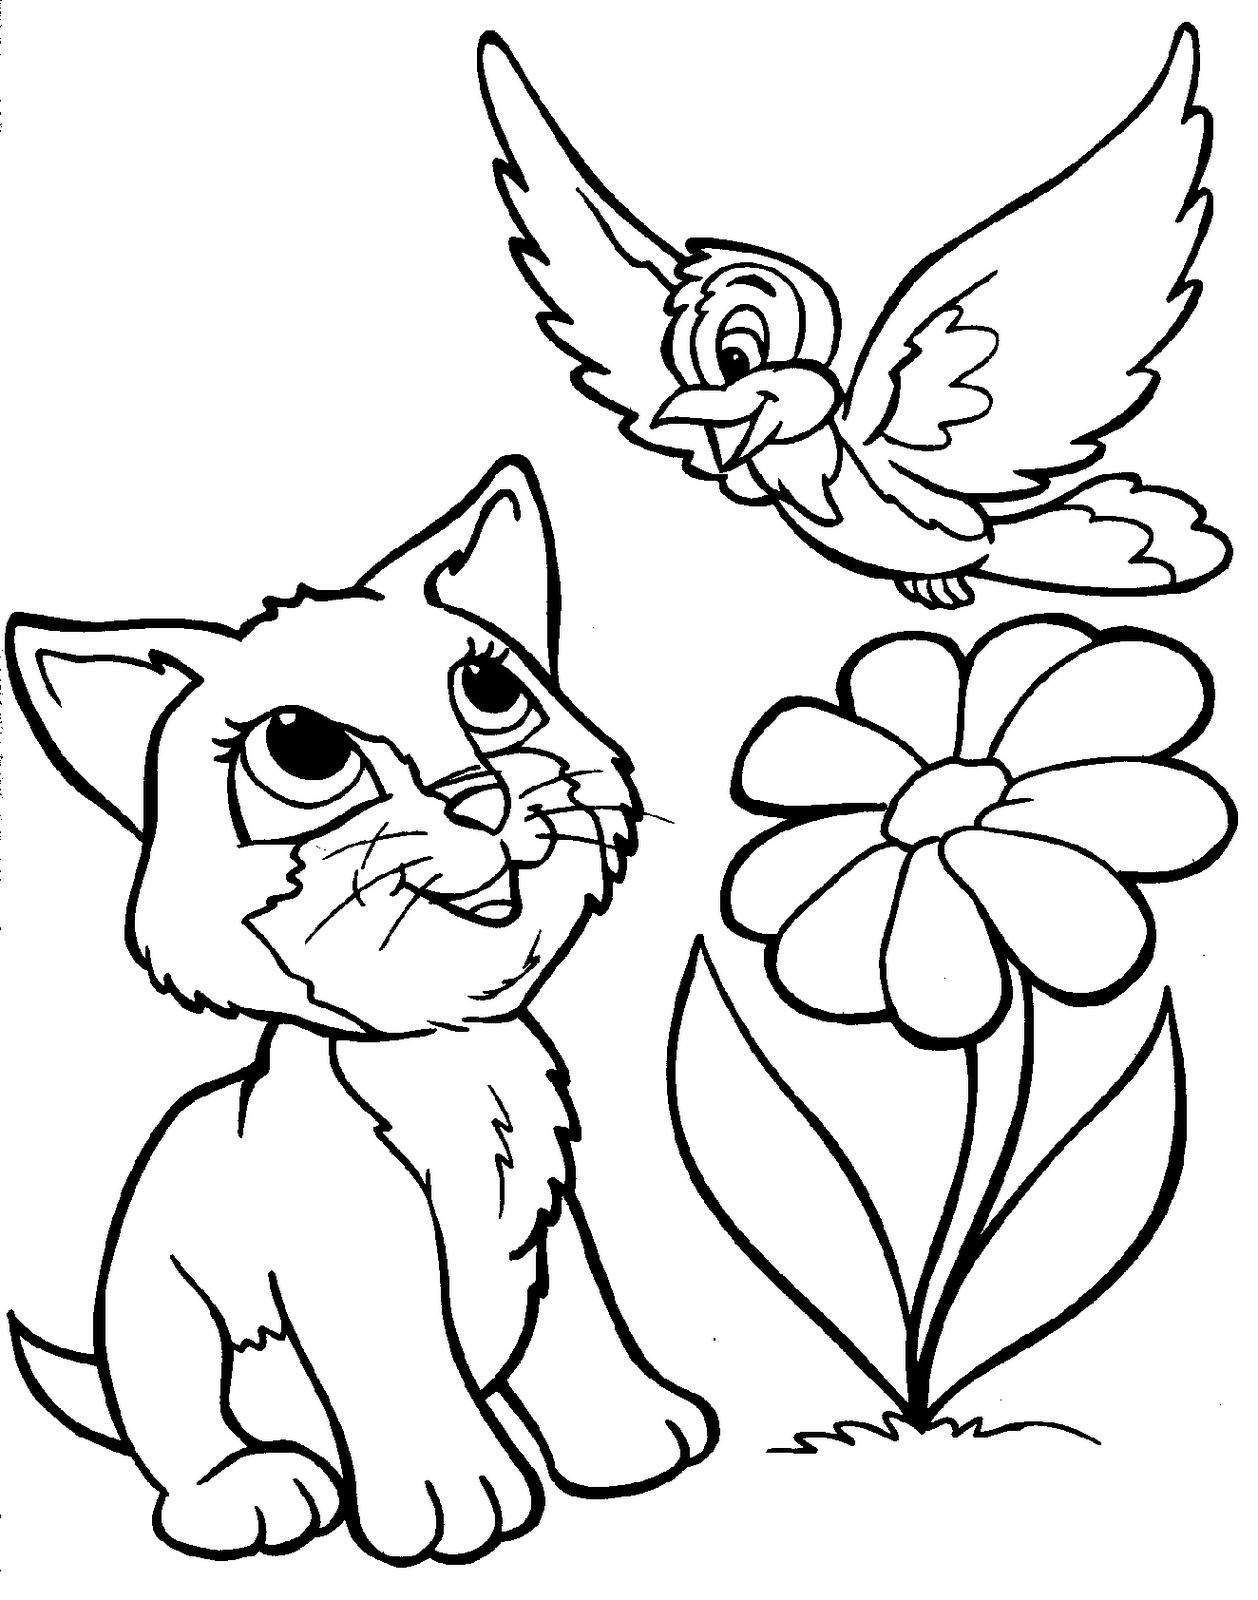 Colouring pages with colour - Printable For Cat Lovers Free Kids Coloring Pagescoloring